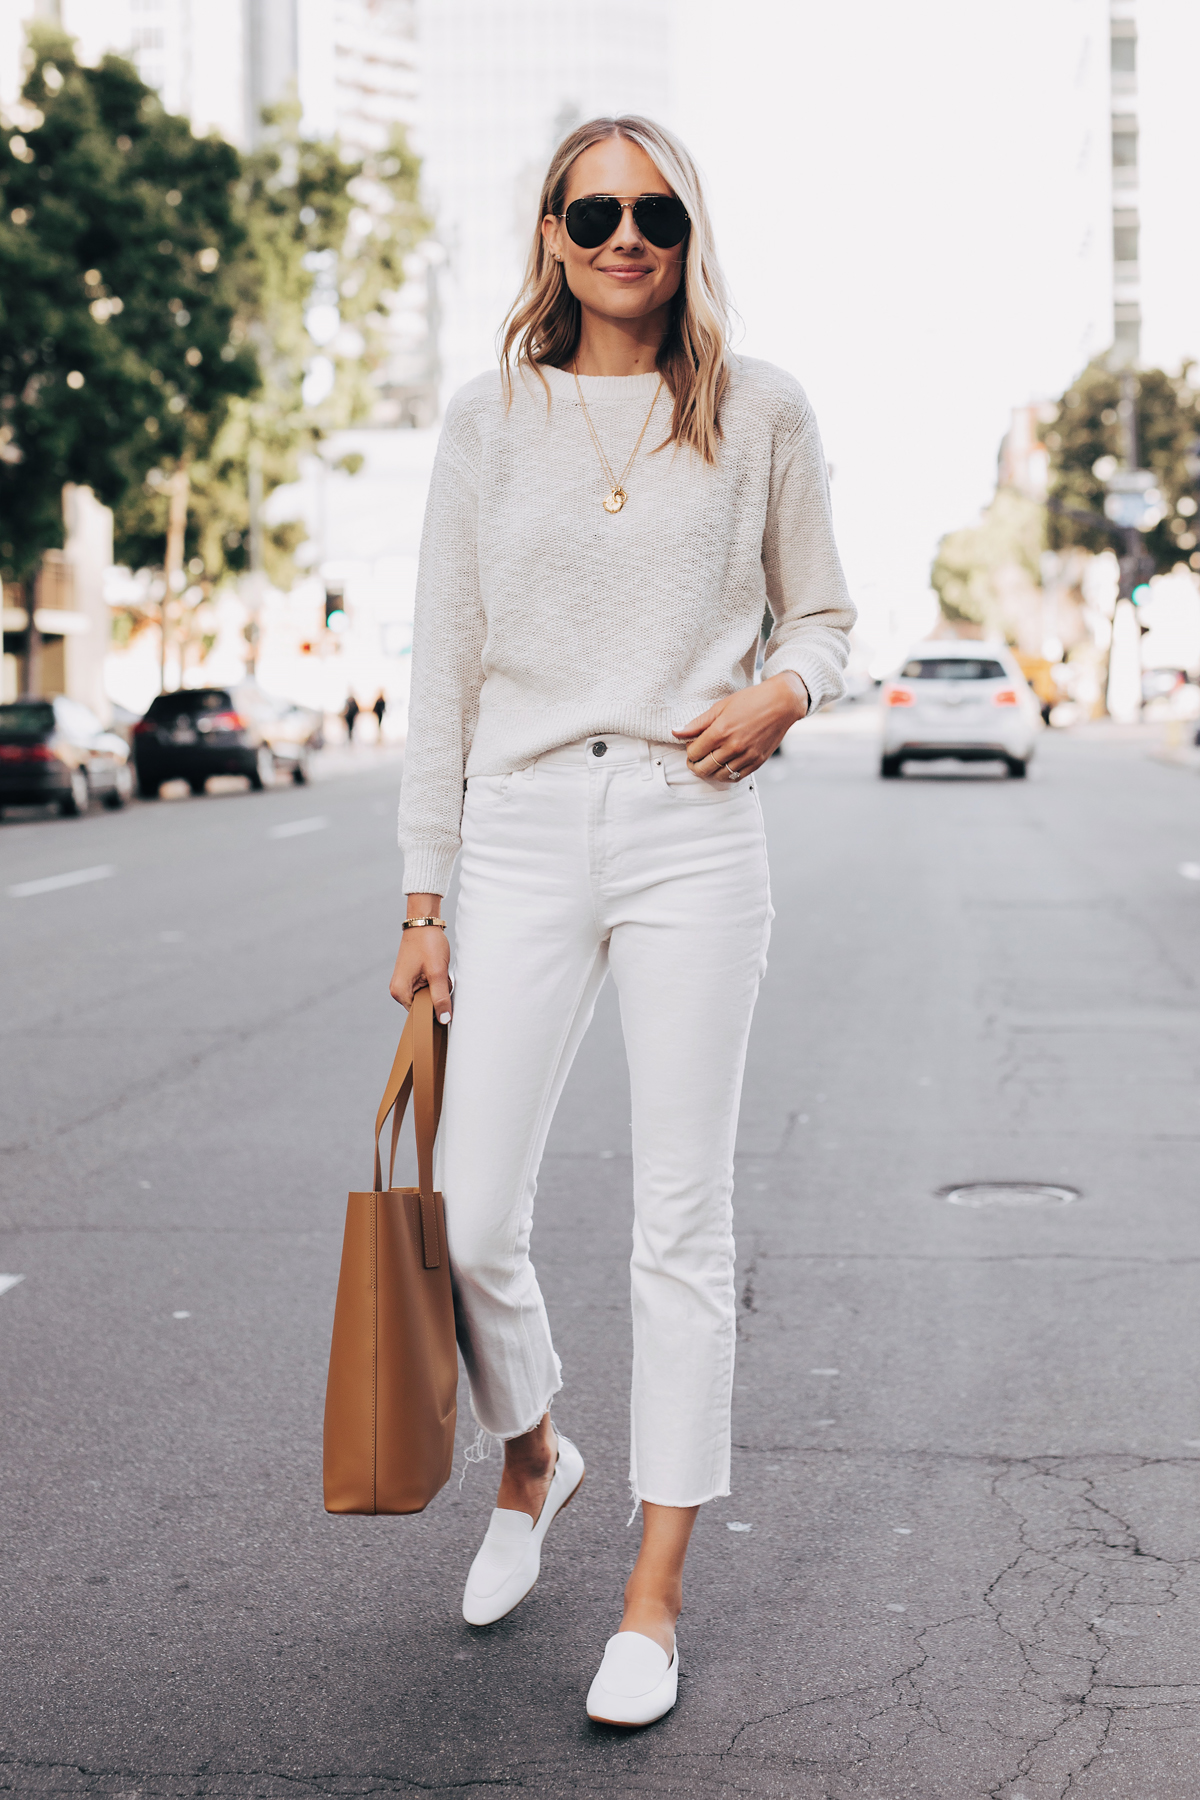 How To Style White Cropped Jeans